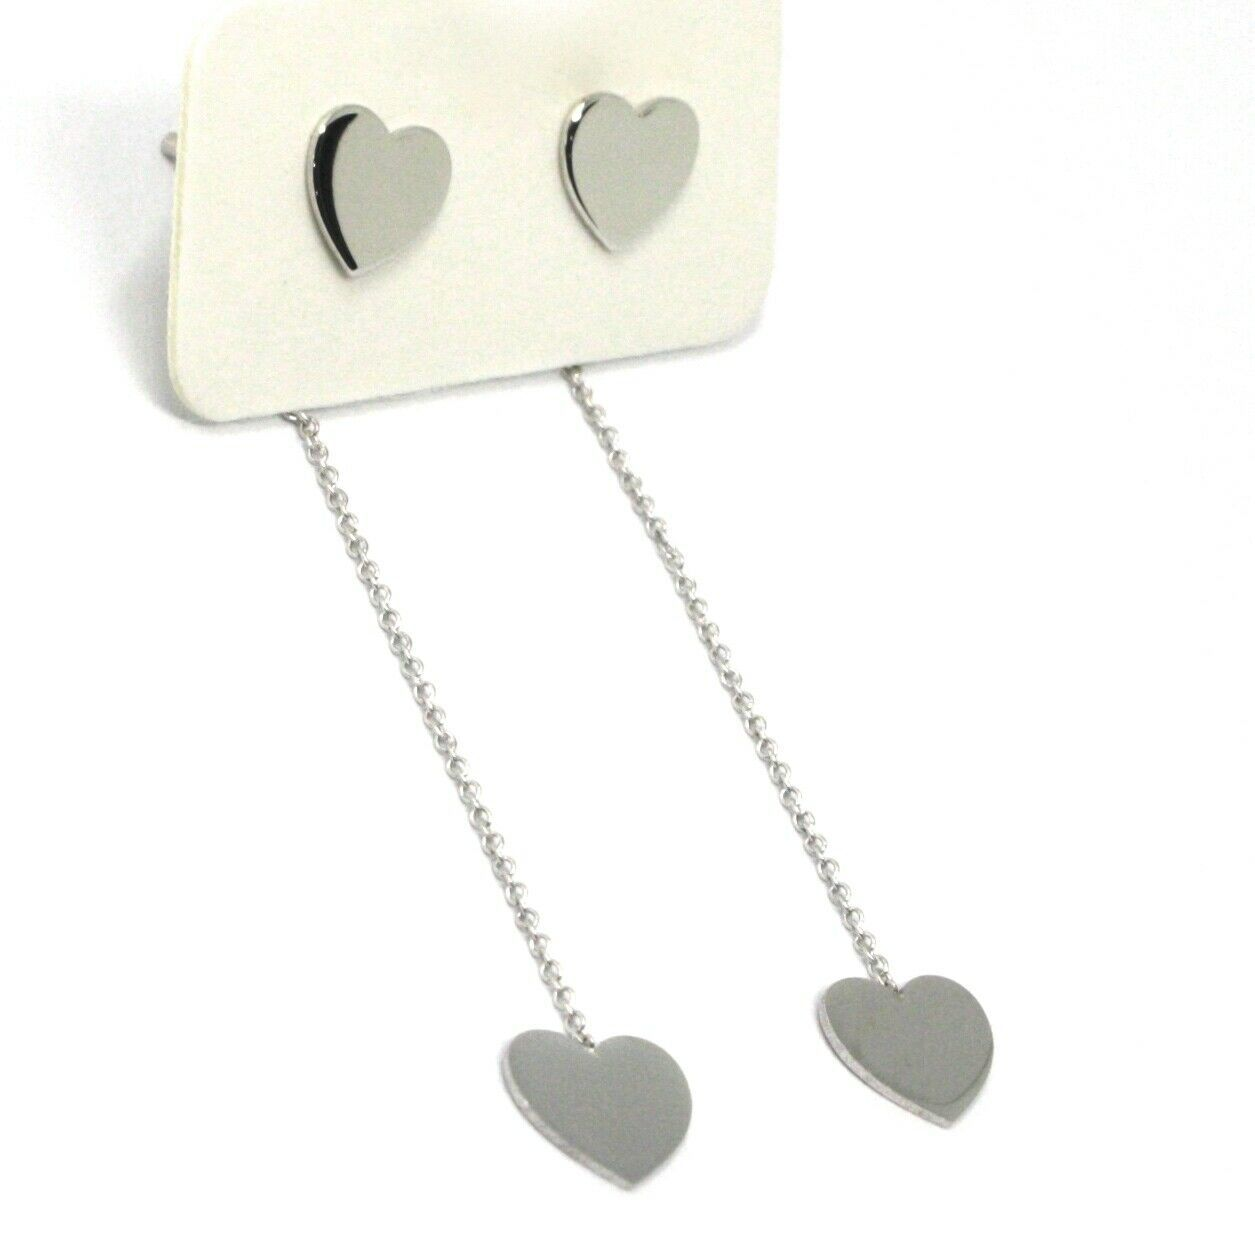 18K WHITE GOLD PENDANT EARRINGS FLAT DOUBLE HEART, SHINY, SMOOTH, ROLO CHAIN